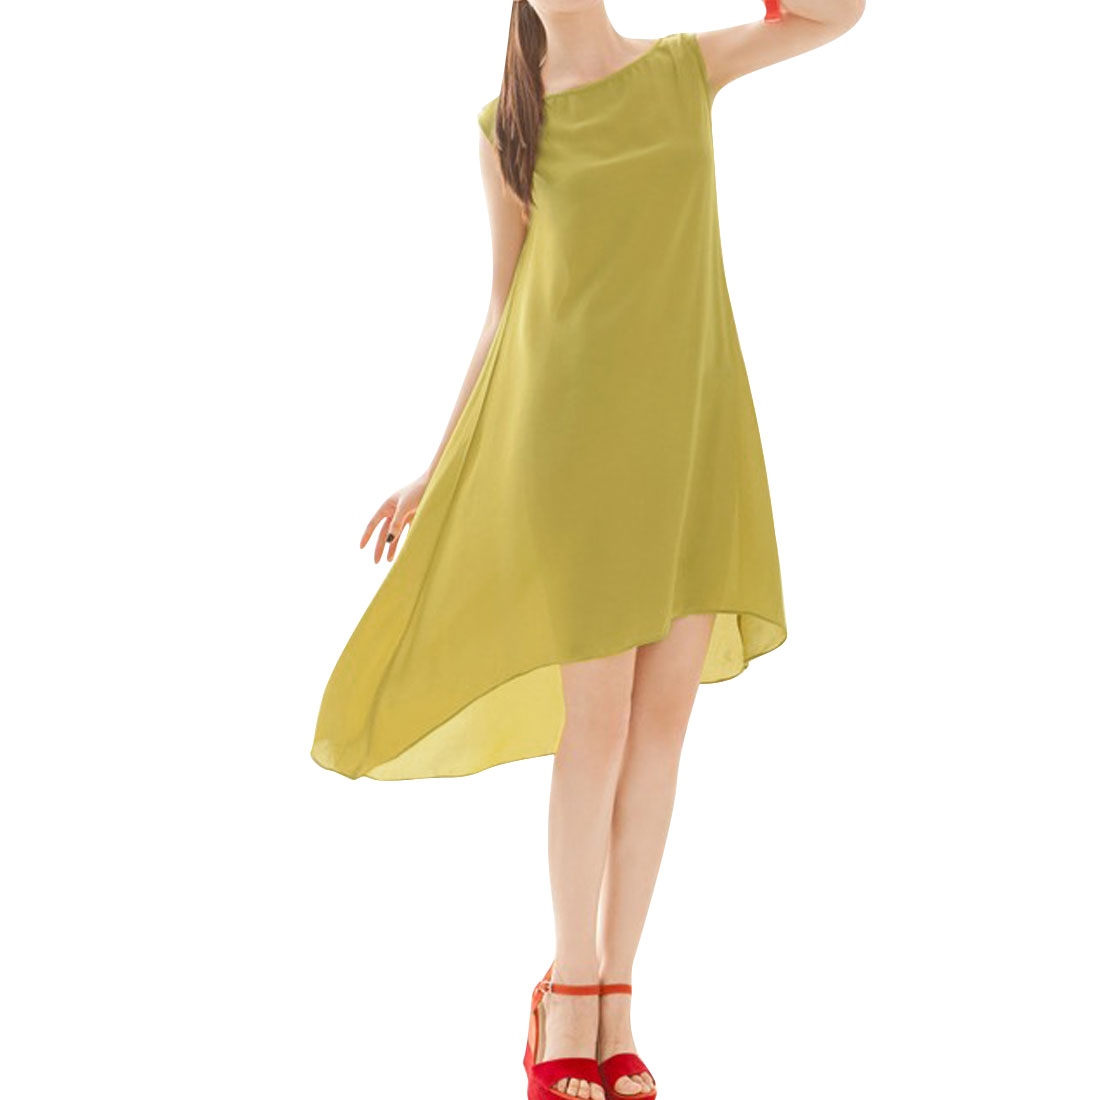 Ladies Round Neck Sleeveless Solid Color Chic Dress Yellow S